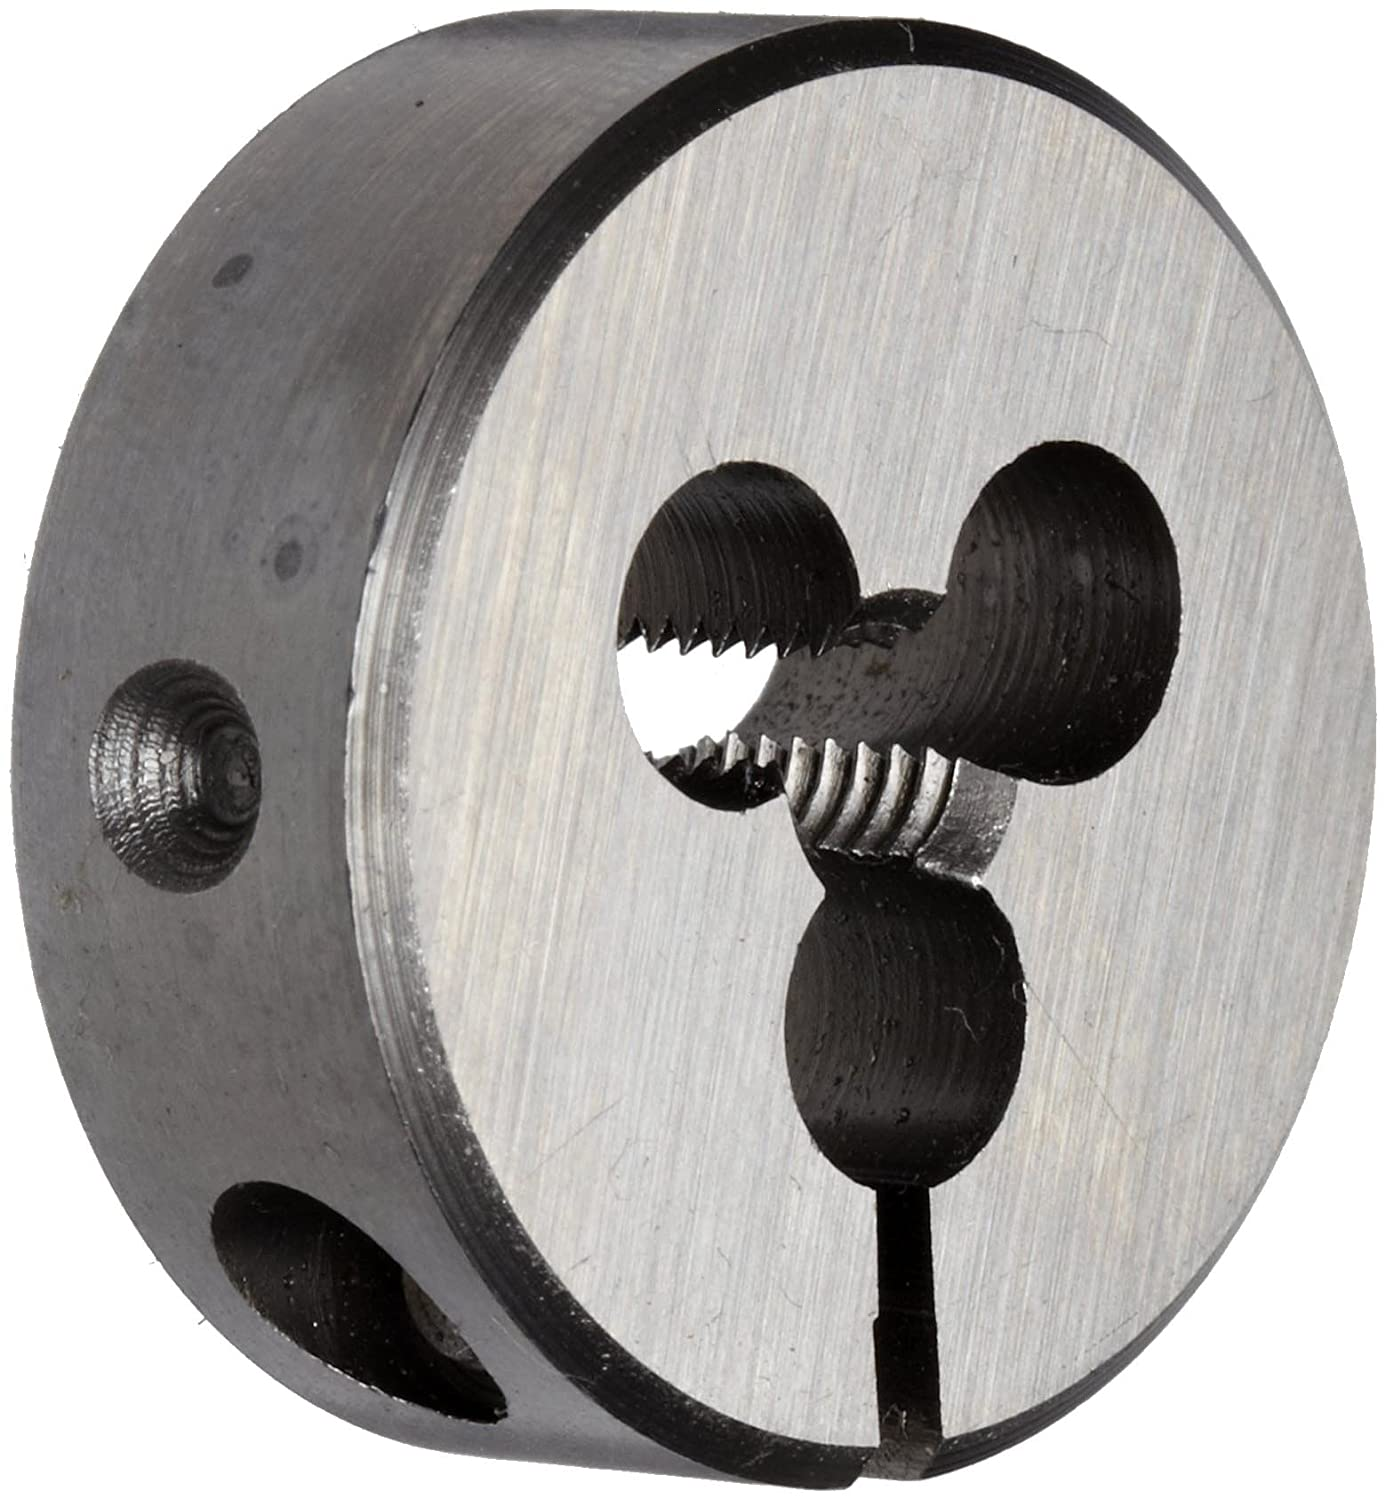 Uncoated 3//8-16 Thread Size Union Butterfield 2510 Bright High-Speed Steel Round Threading Die Finish 1 OD UNC